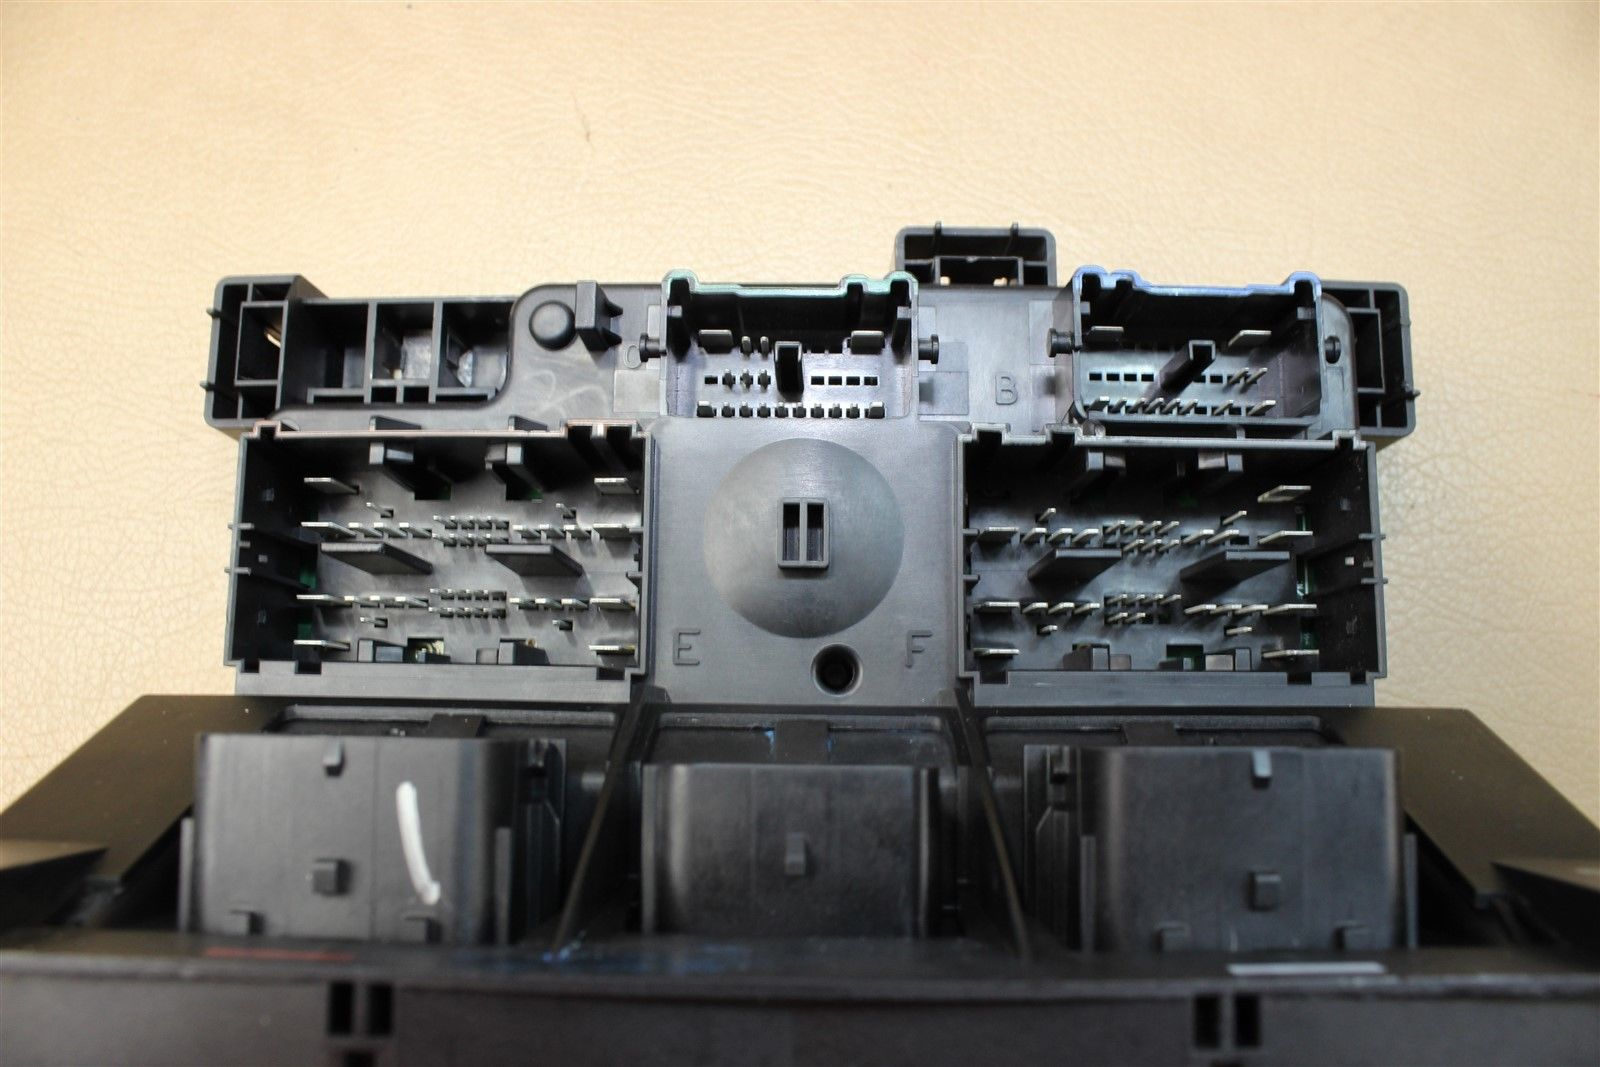 2010 RAM 2500 3500 6.7L FUSE BOX TIPM TOTALLY INTEGRATED POWER MODULE  04692194AG Does not